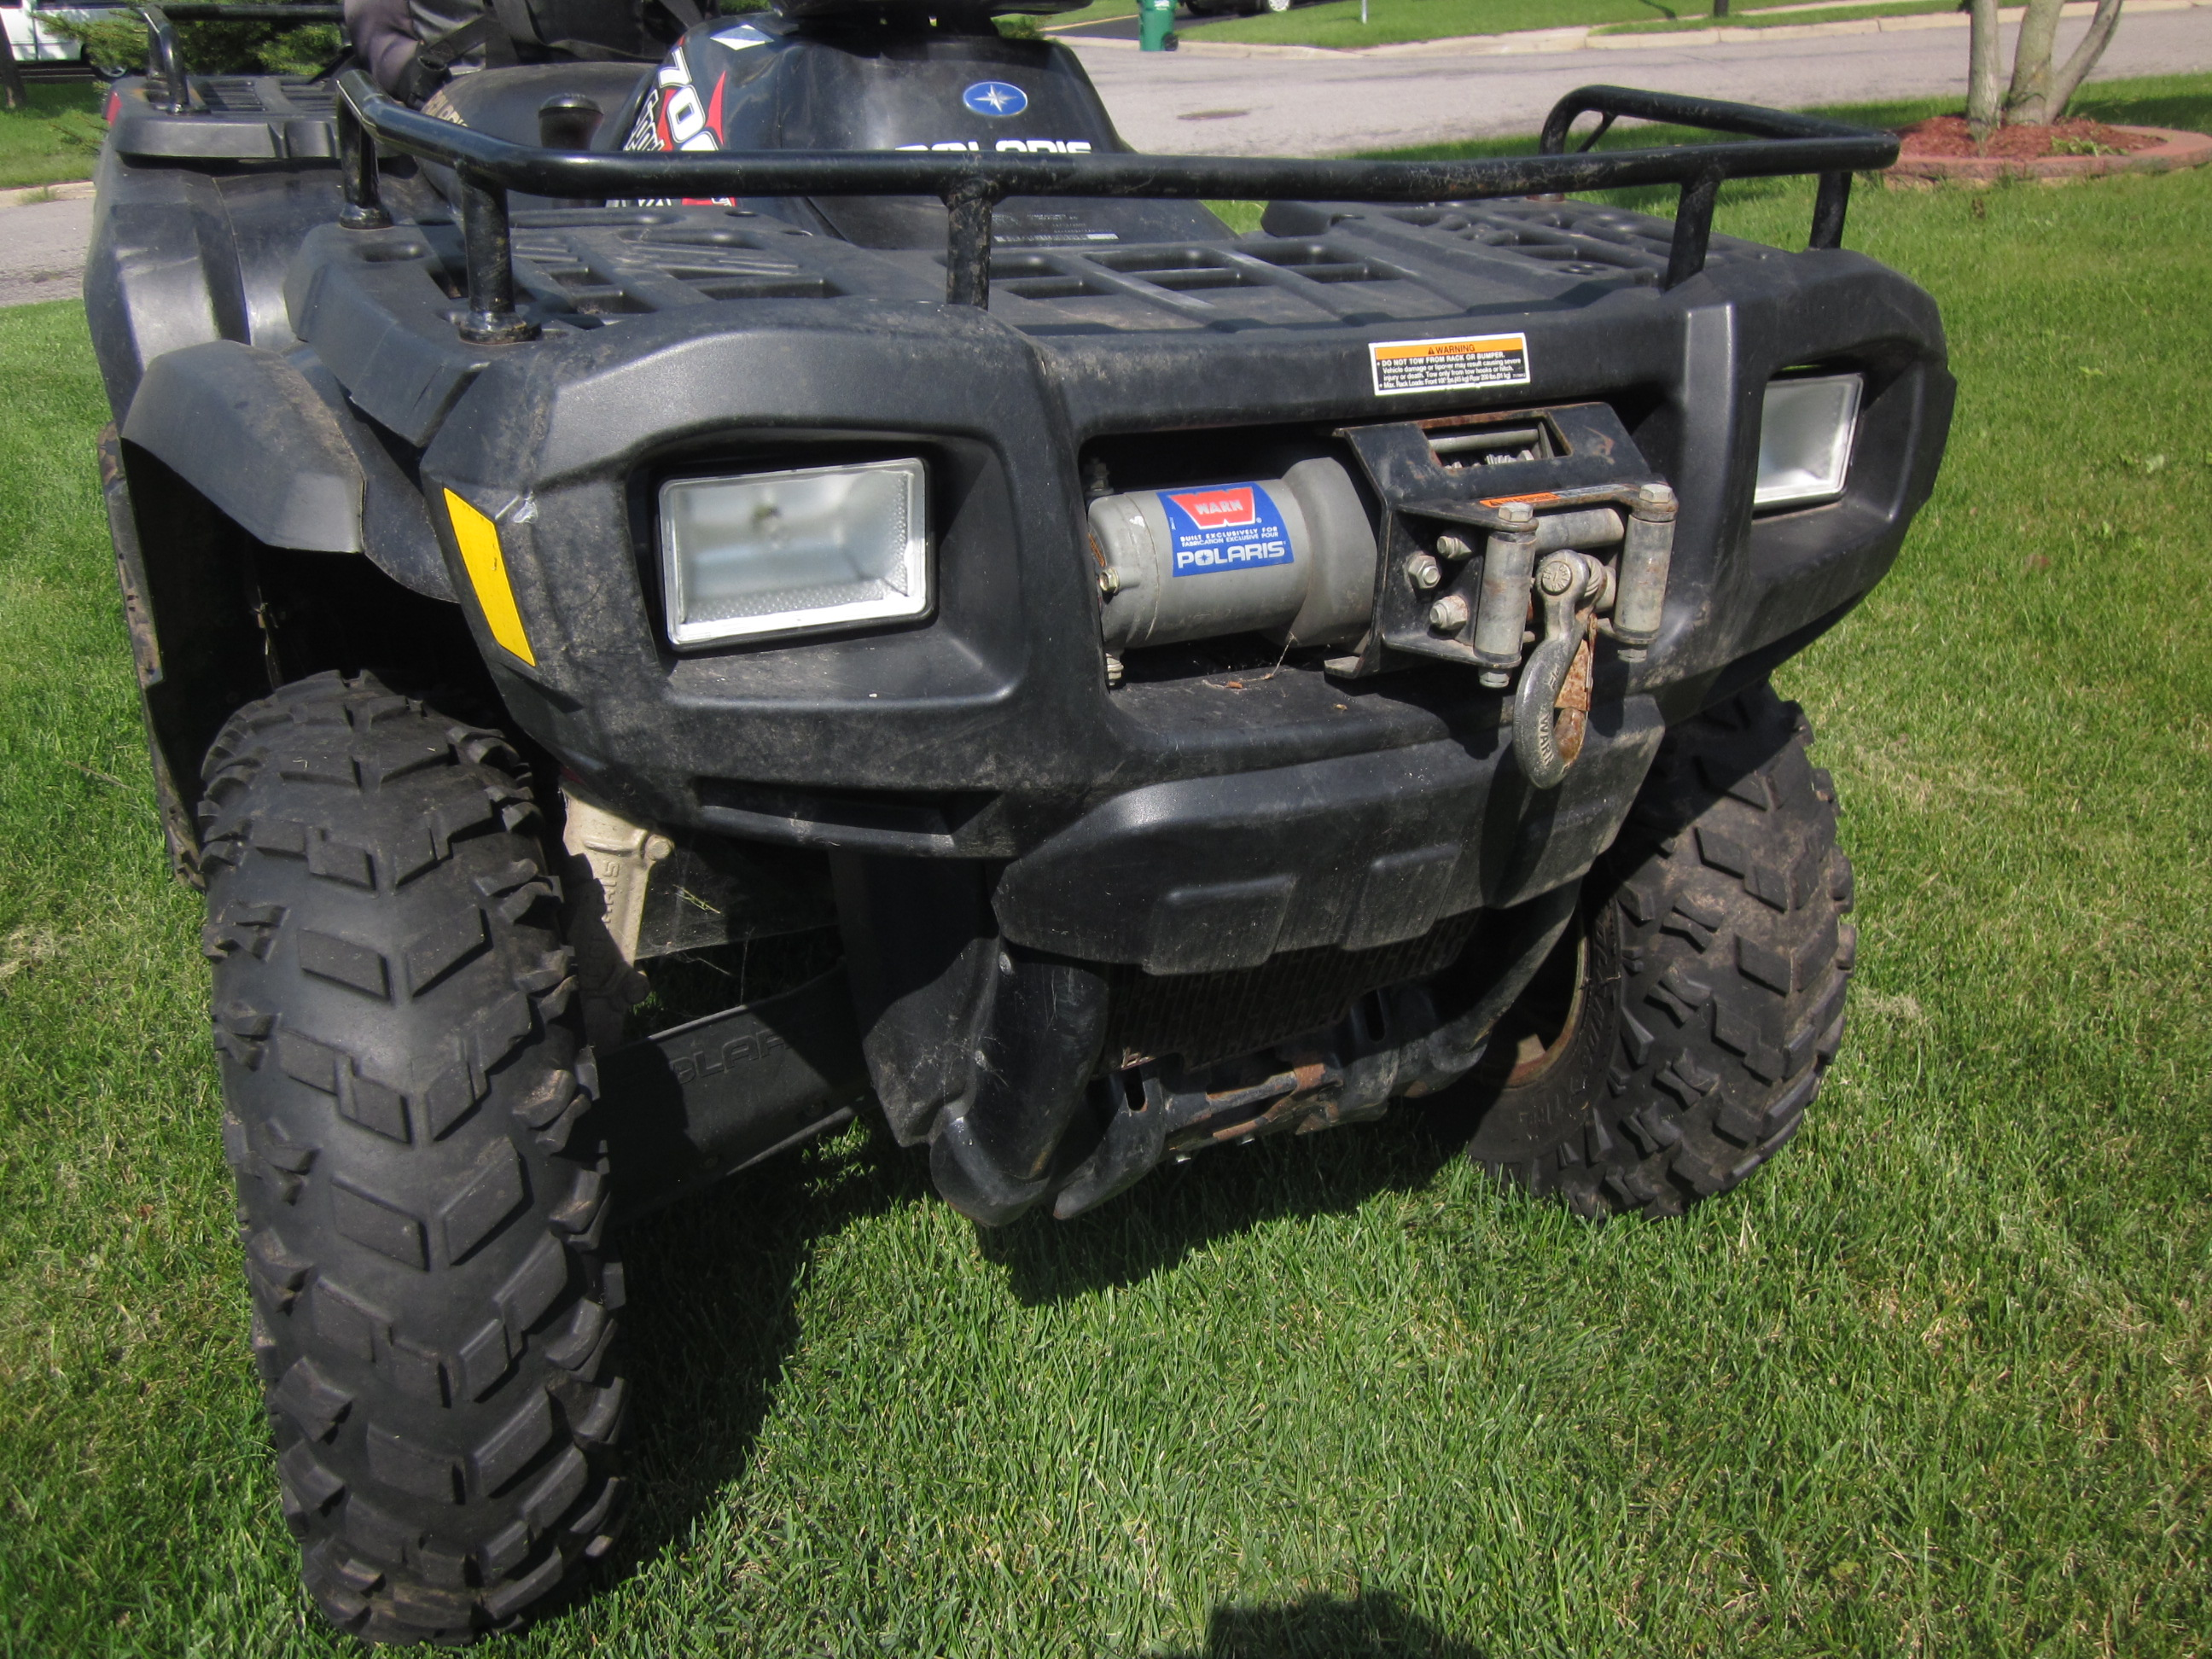 1996 Polaris Sportsman 500 H.O: pics, specs and information ... on exhaust system diagram, polaris 600 wiring diagram, 1996 honda 300 trx wiring diagram, 2007 polaris sportsman 700 wiring diagram, 1996 kawasaki bayou 300 wiring diagram, 2005 polaris sportsman 700 wiring diagram, polaris sportsman 500 carburetor diagram, 1996 yamaha kodiak 400 wiring diagram, 07 polaris sportsman amp diagram, 1996 arctic cat wiring diagram, polaris atv wiring diagram, polaris sportsman 500 ignition diagram, polaris predator 500 wiring diagram, polaris ranger 500 wiring diagram,